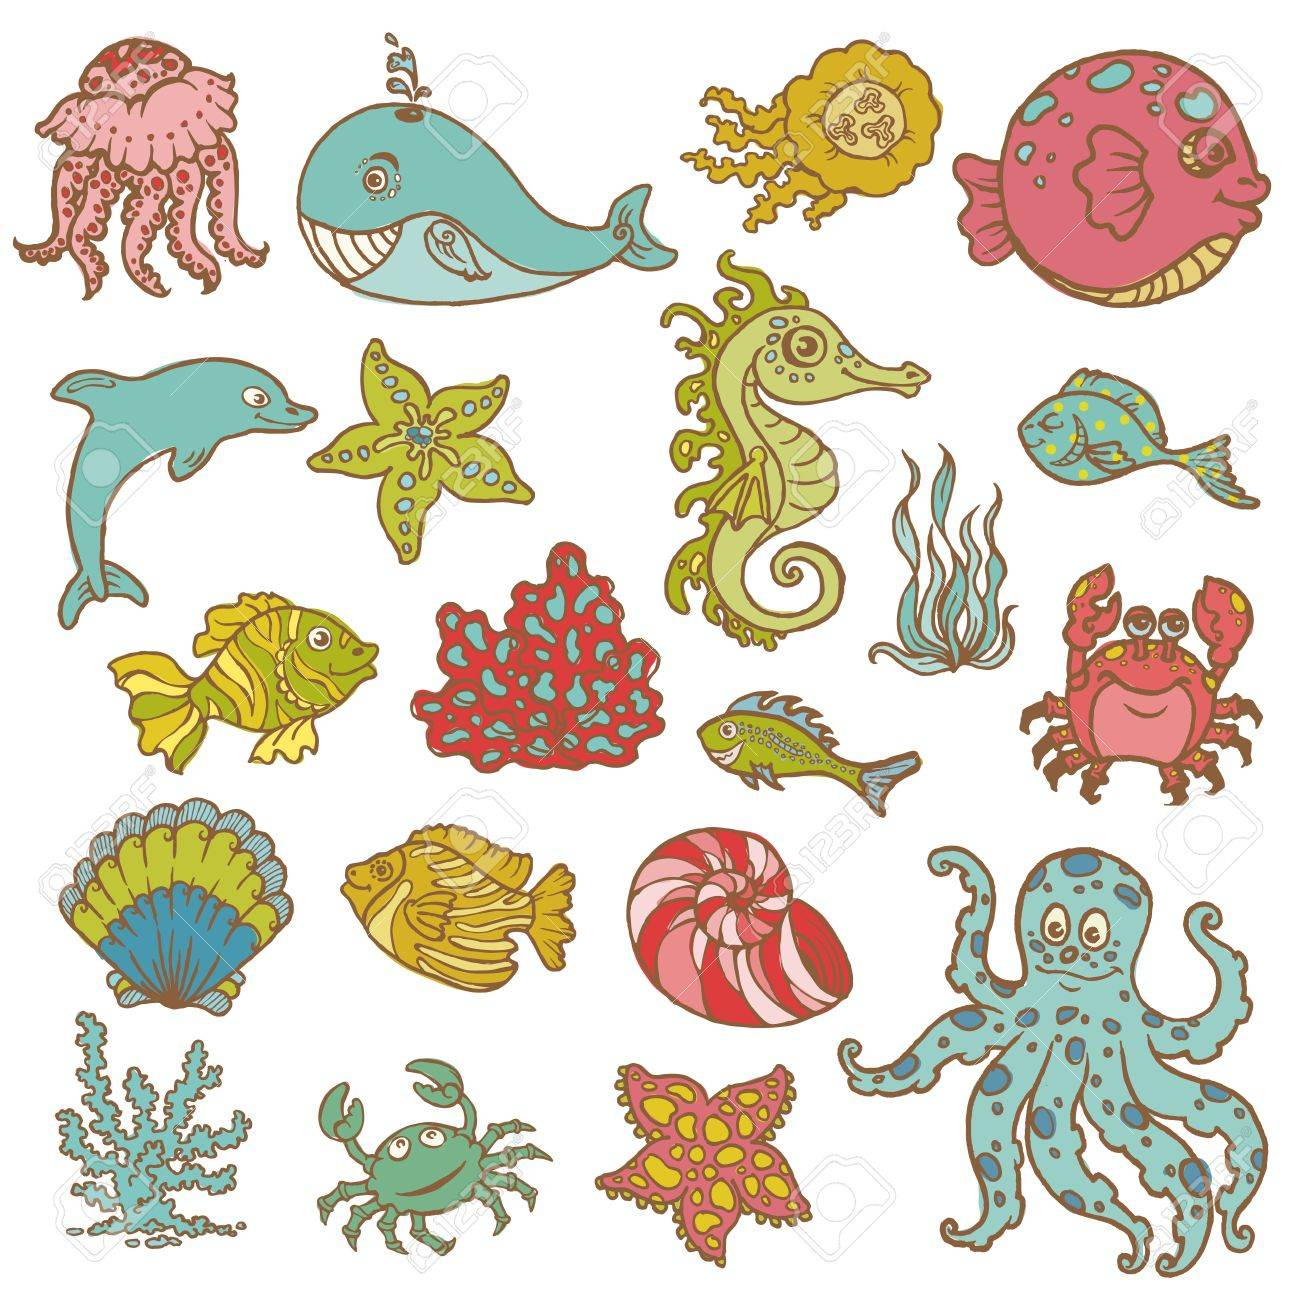 Marine life doodles - Hand drawn collection in vector Stock Vector - 13101906